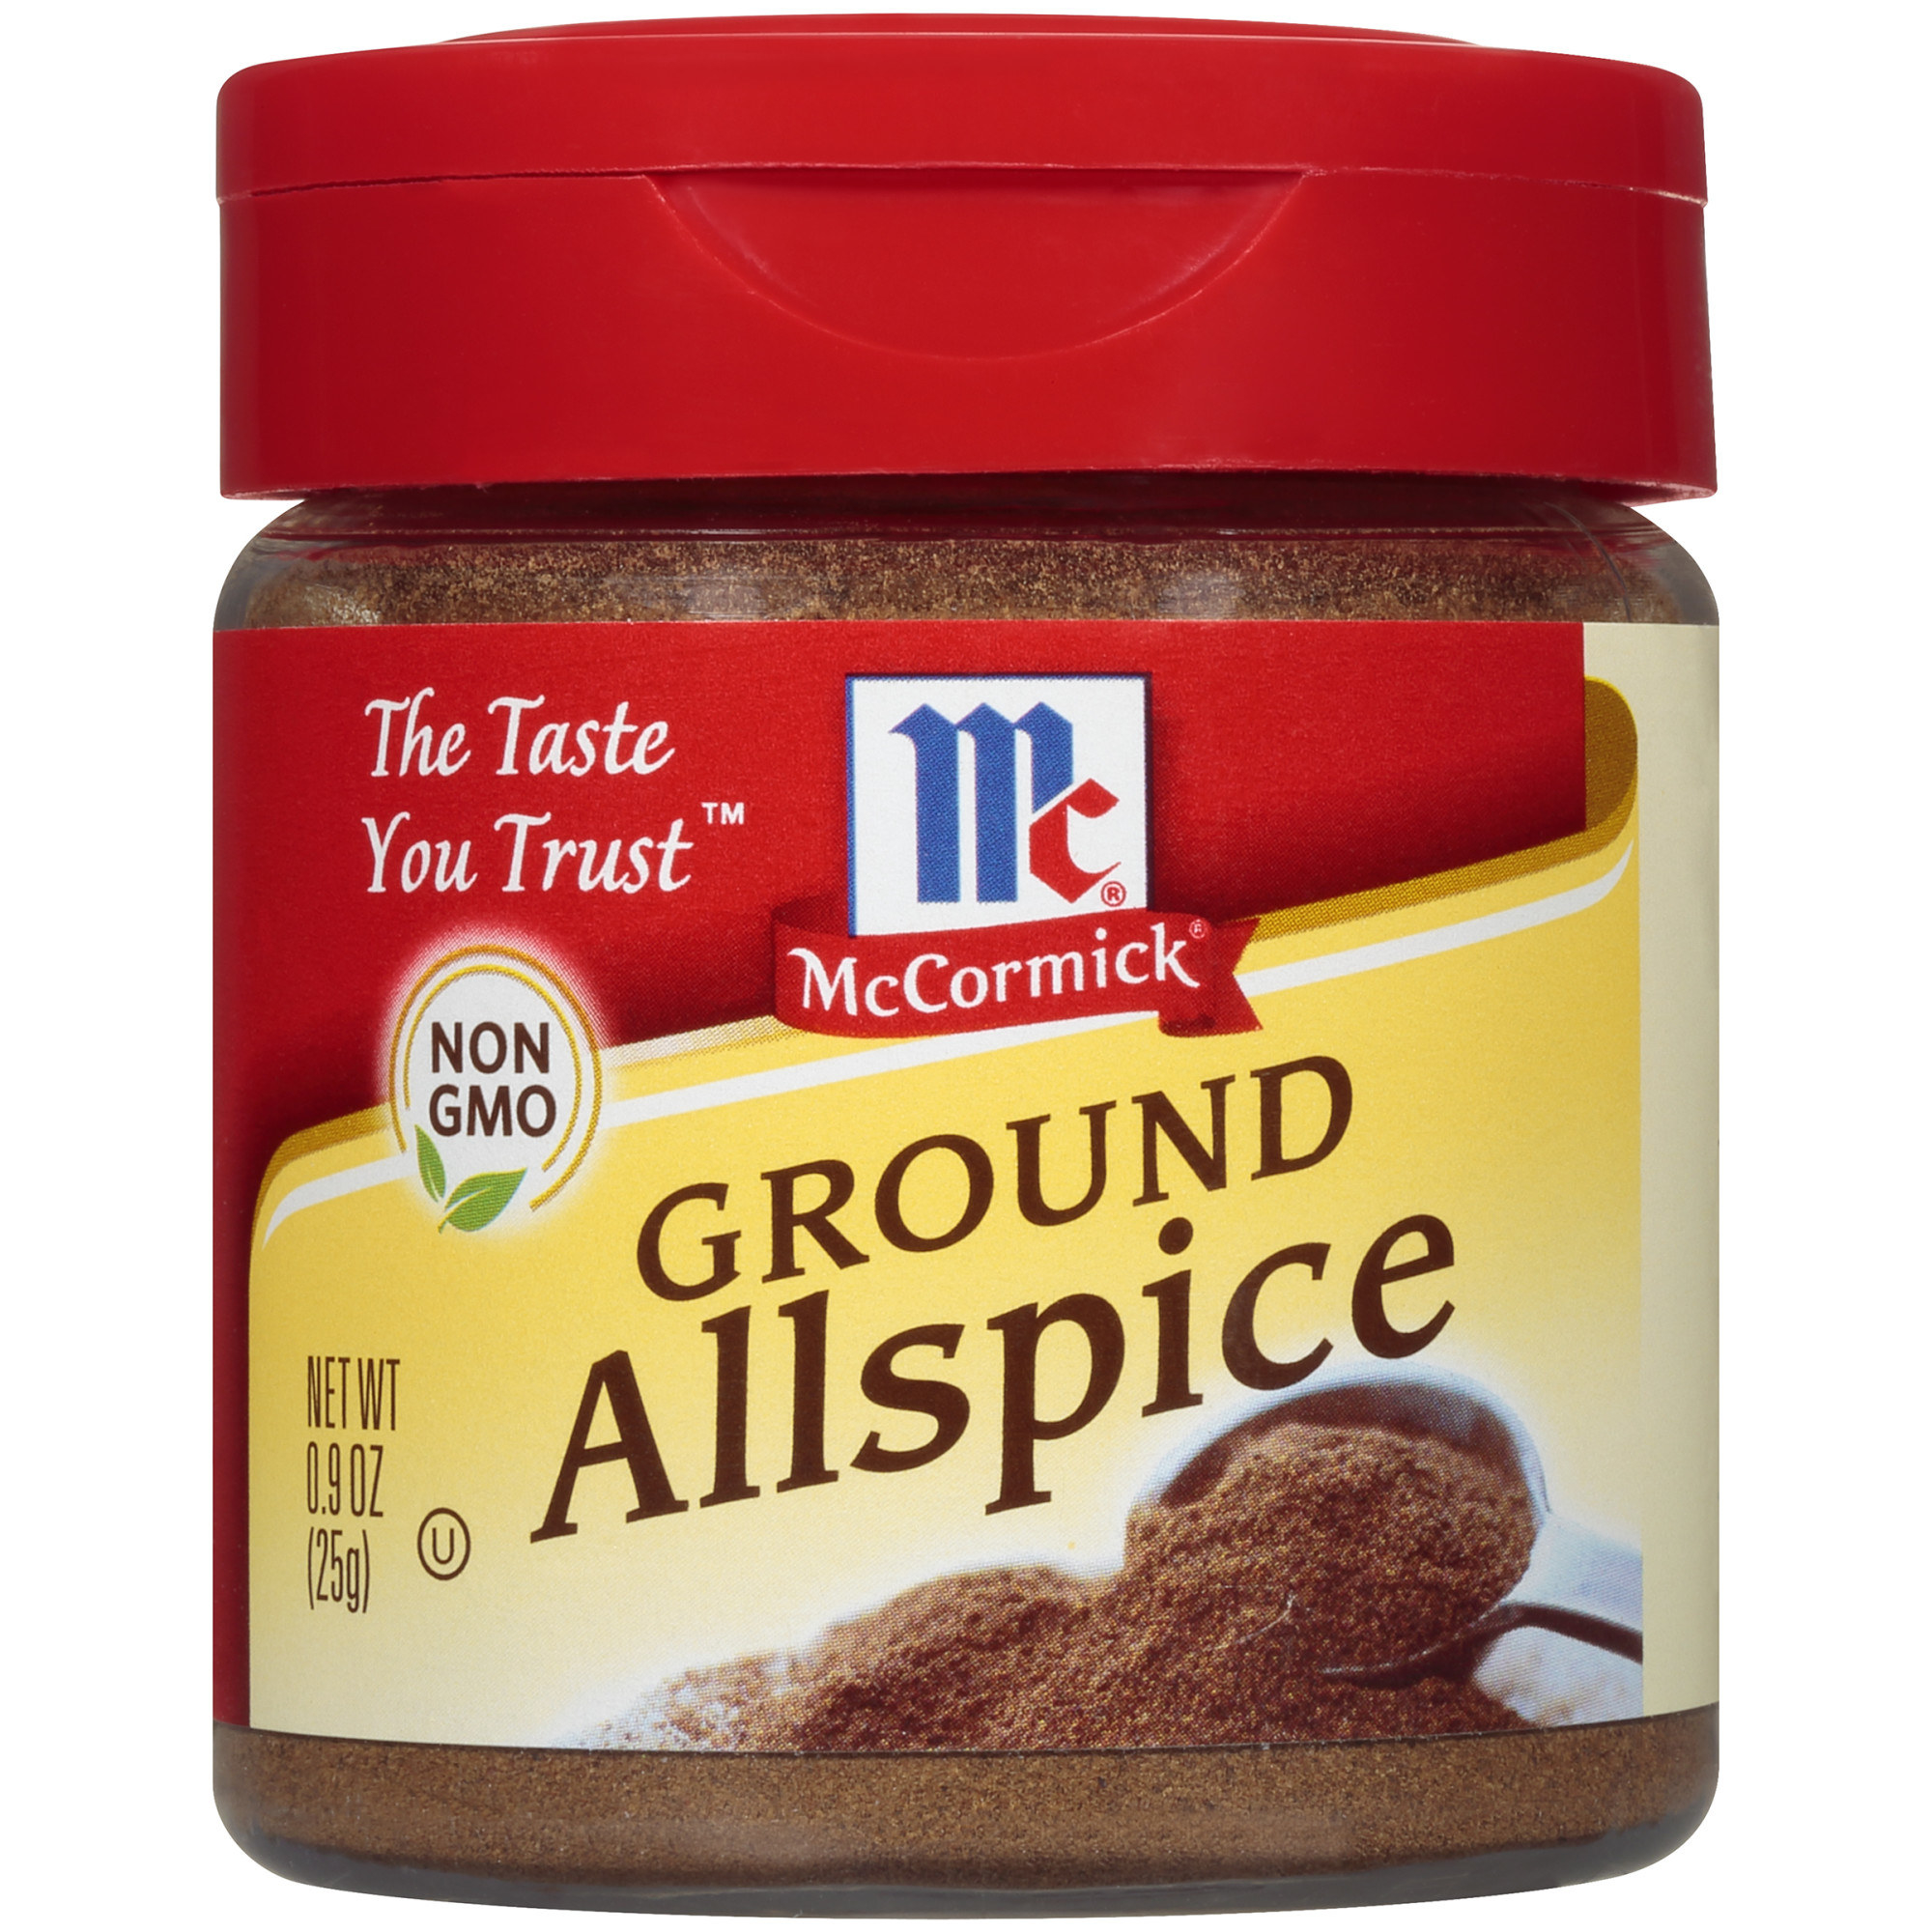 A container of ground allspice